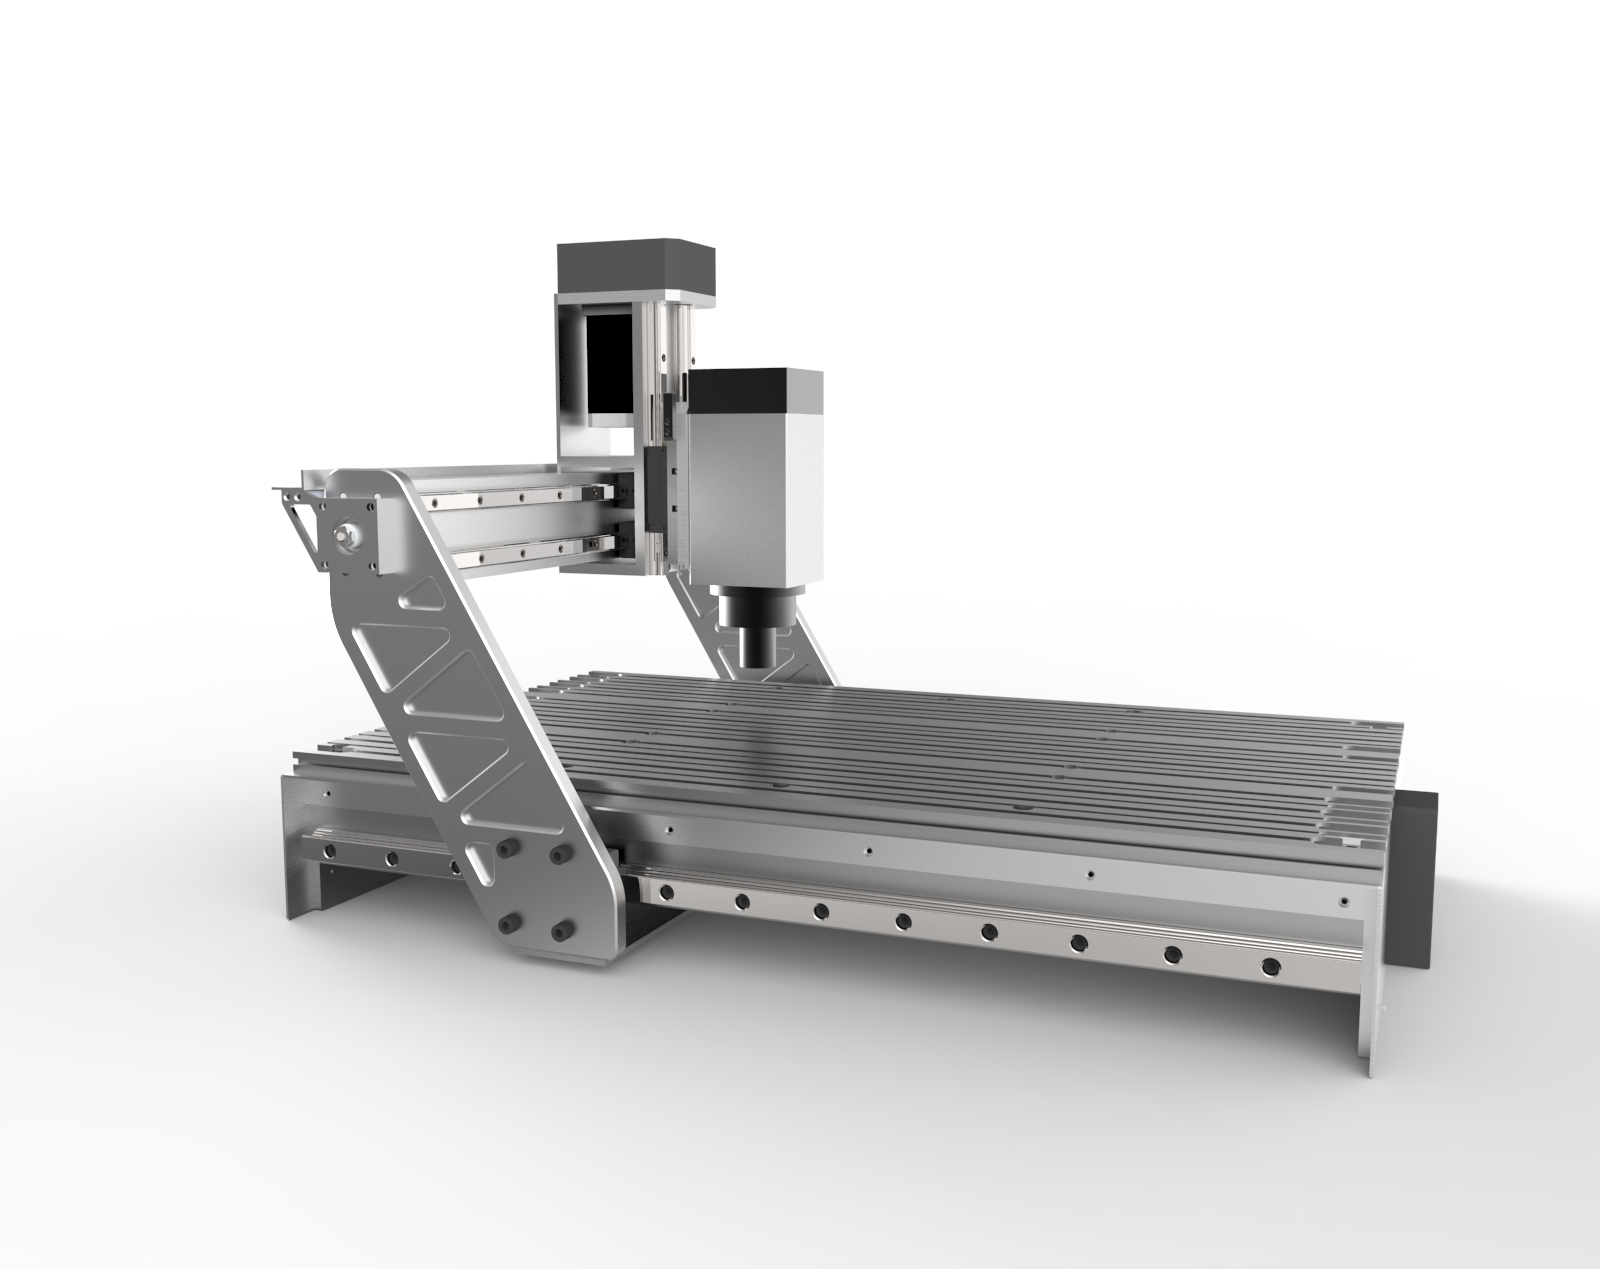 Picture of Building Your Own CNC Router/milling Machine